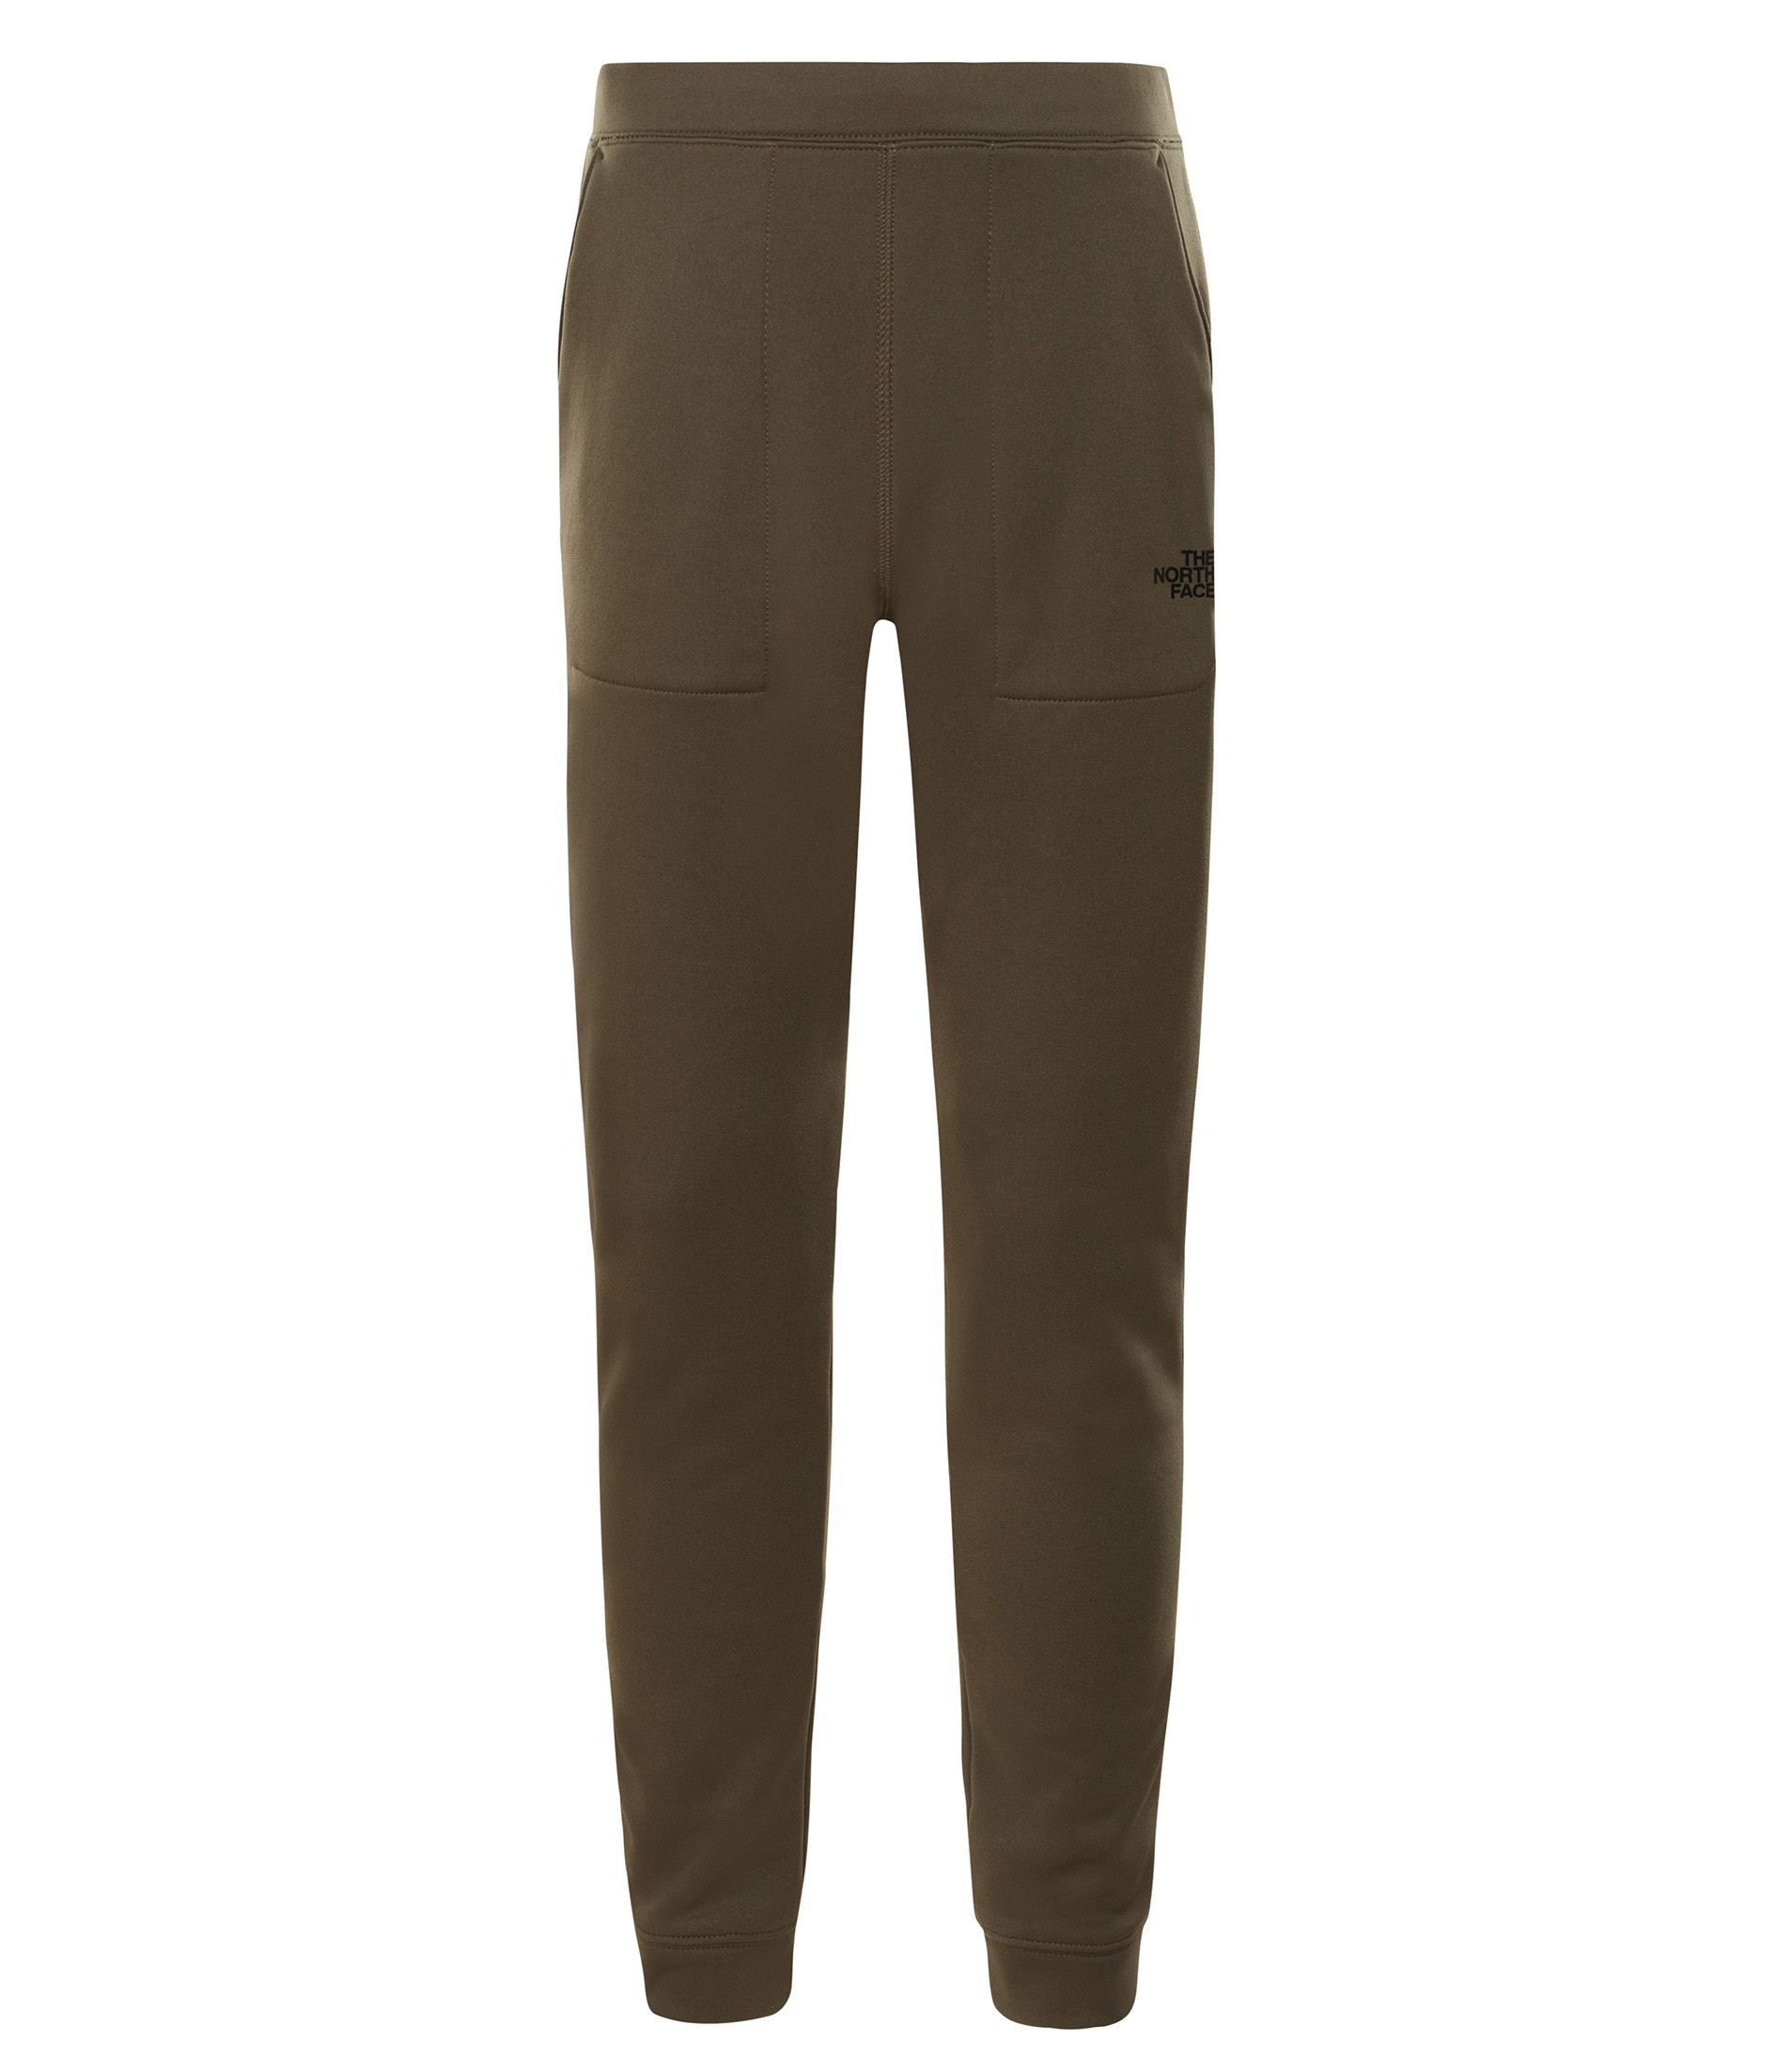 THE NORTH FACE B SURGENT PANT, NEW TAUPE GREEN velikost: M